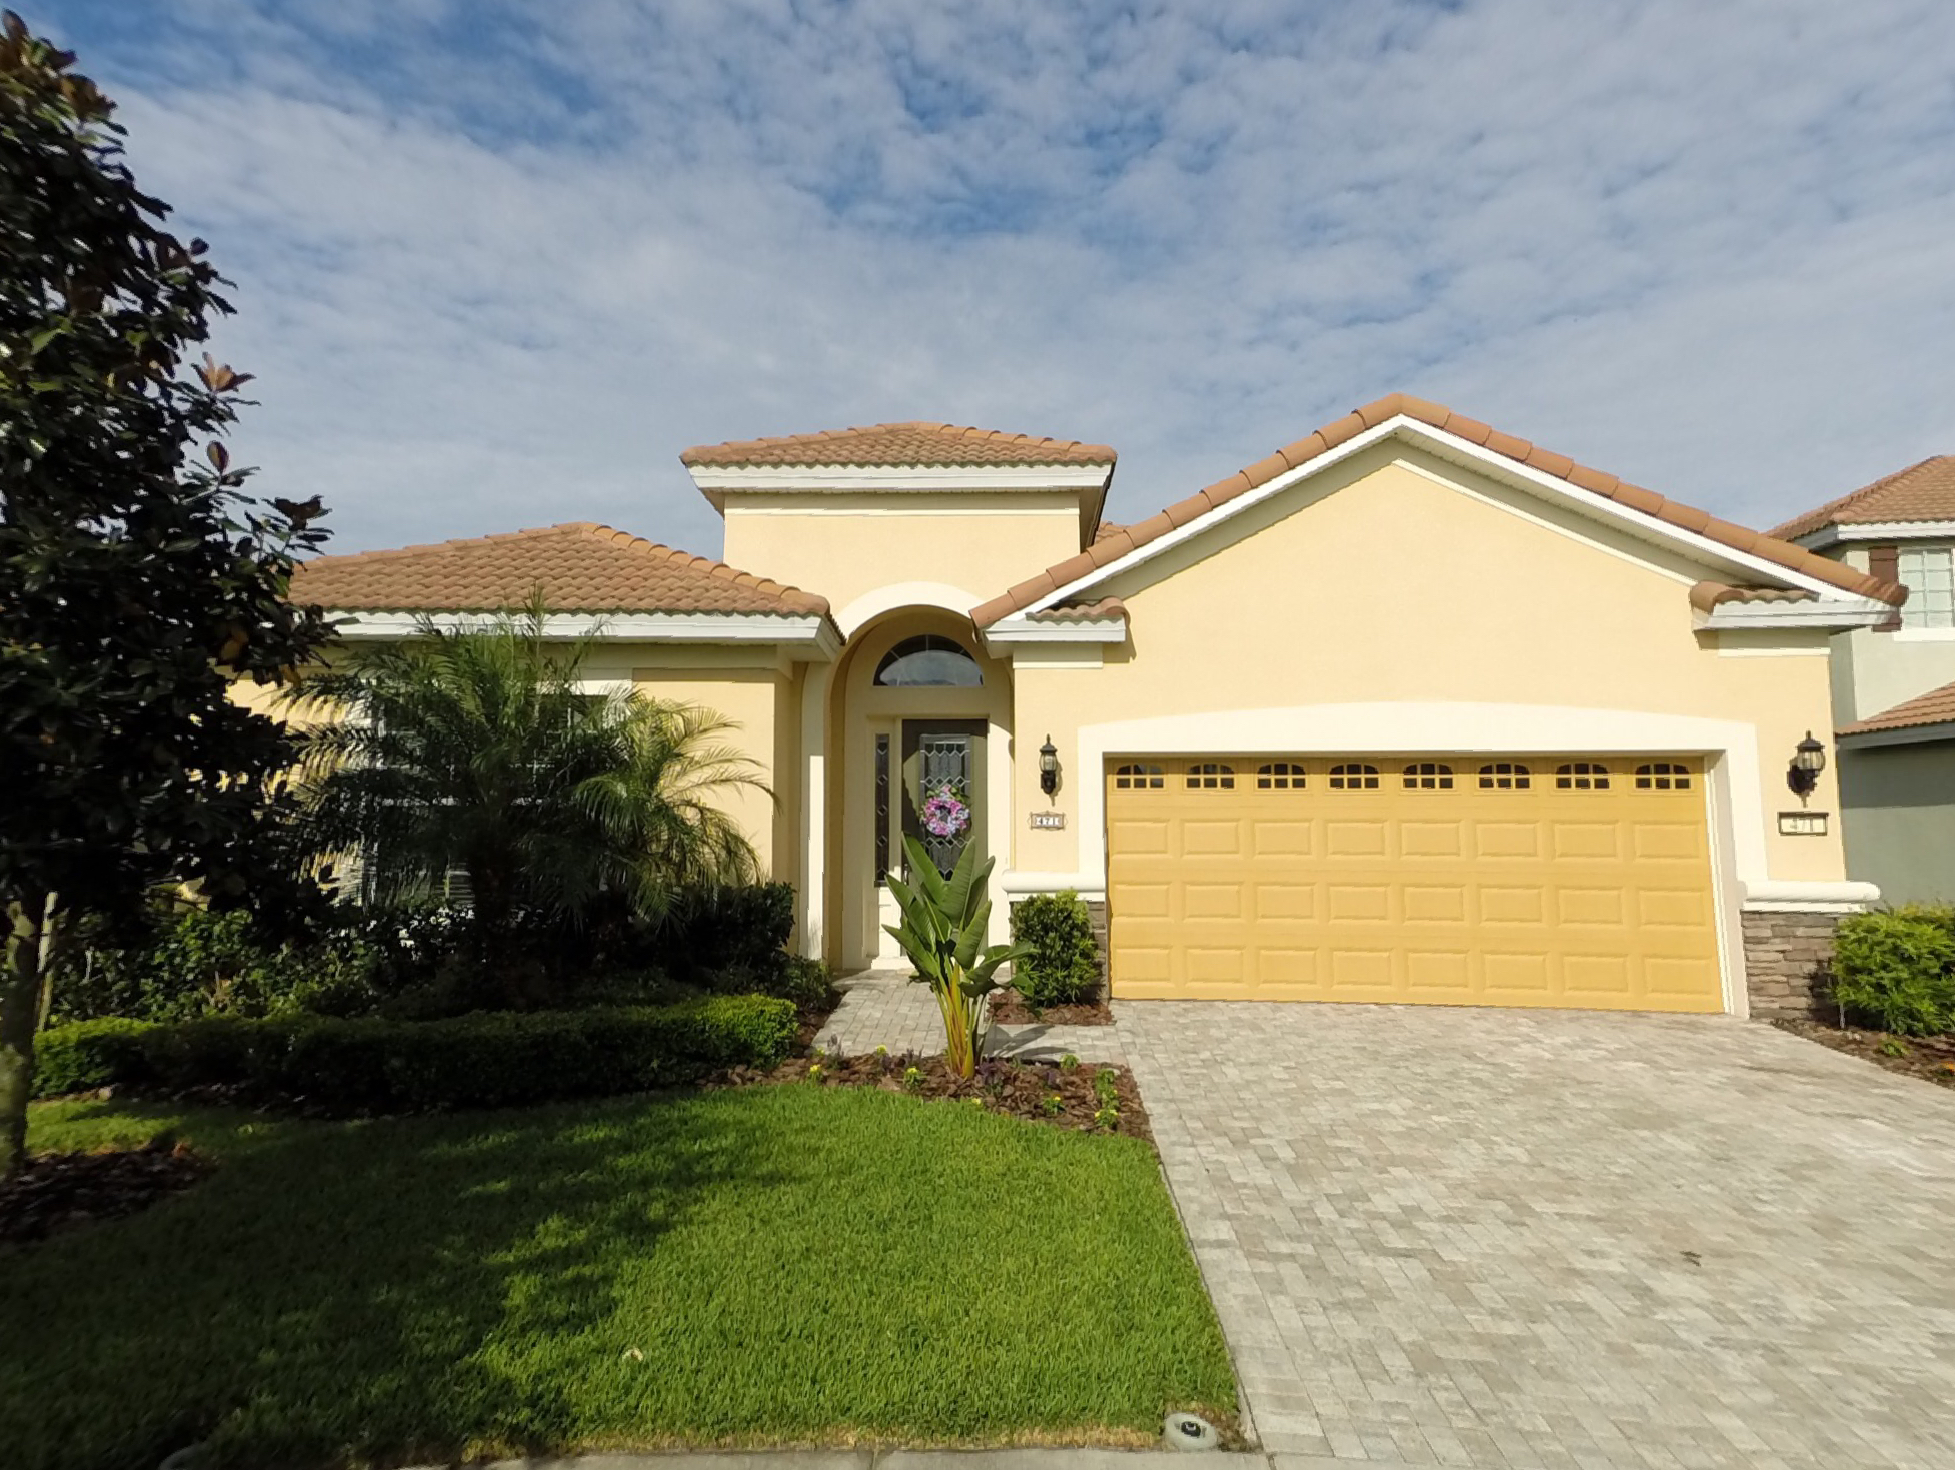 Homes For Sale In Winter Garden FL. 34787 | Real Estate | ReMax